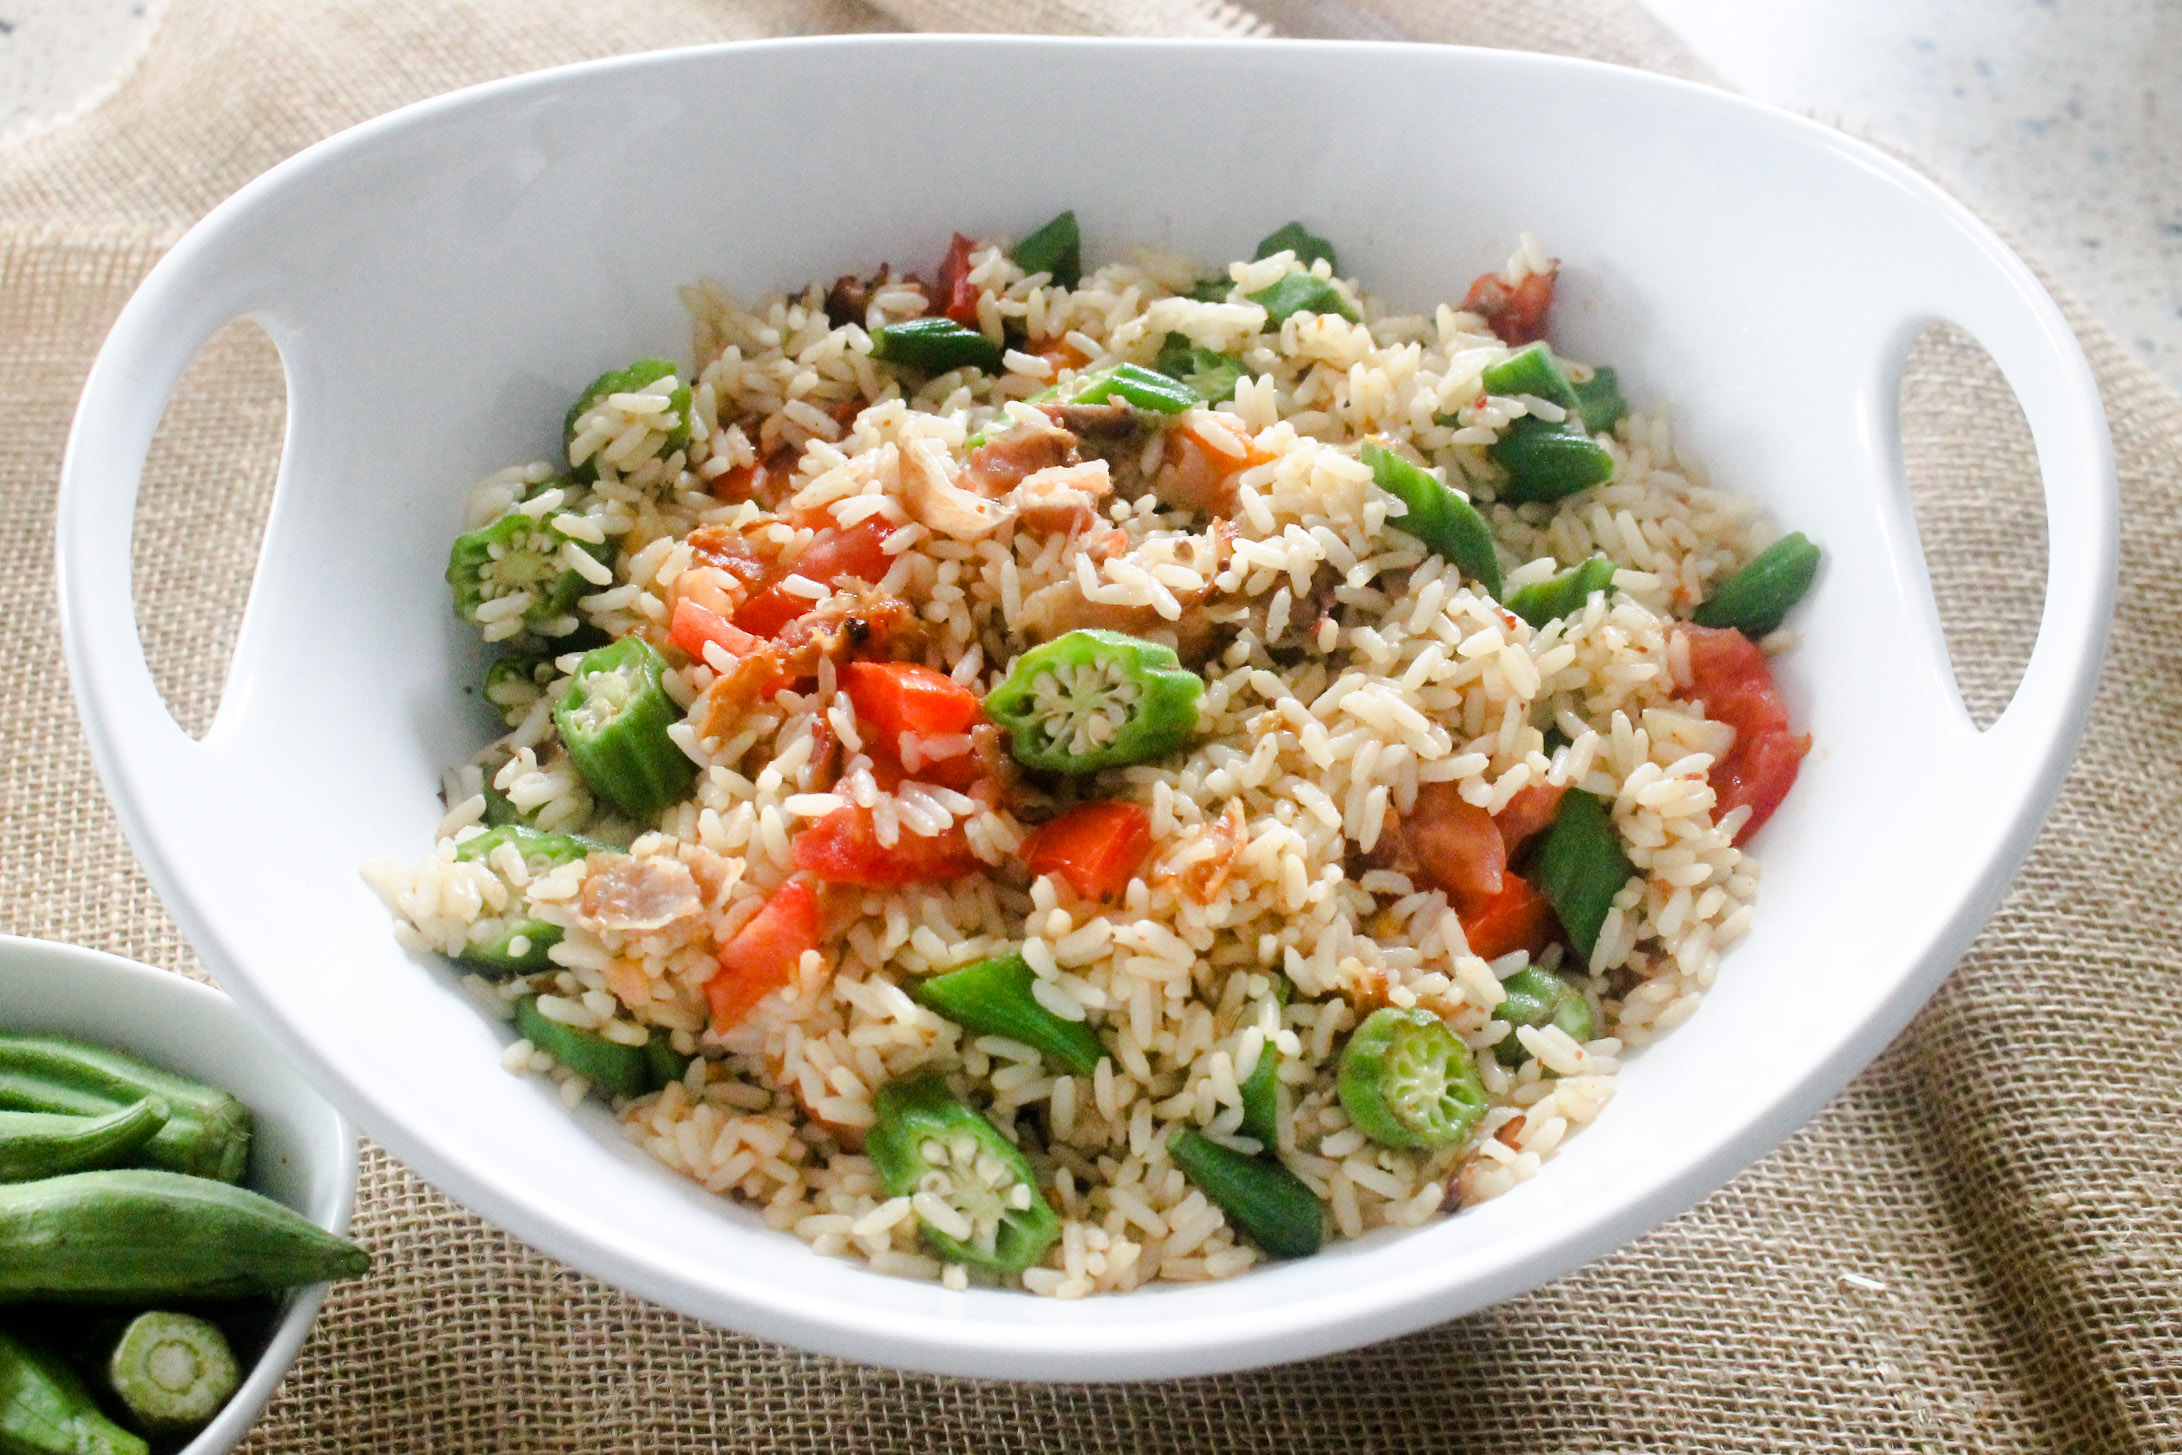 Fried Rice Which Contains All Food Groups